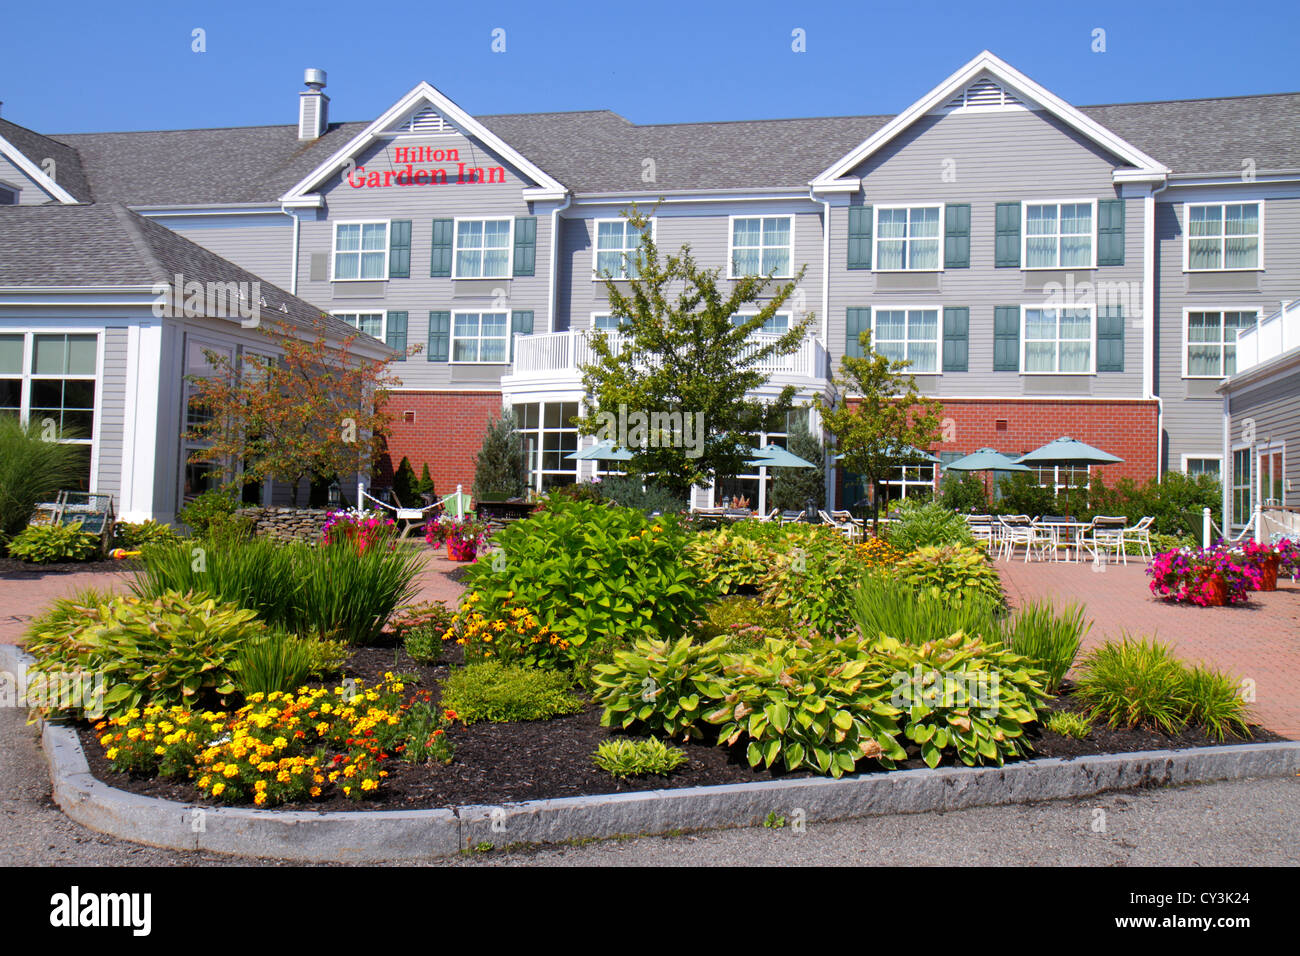 Maine Freeport Hilton Garden Inn Motel Hotel Front Outside